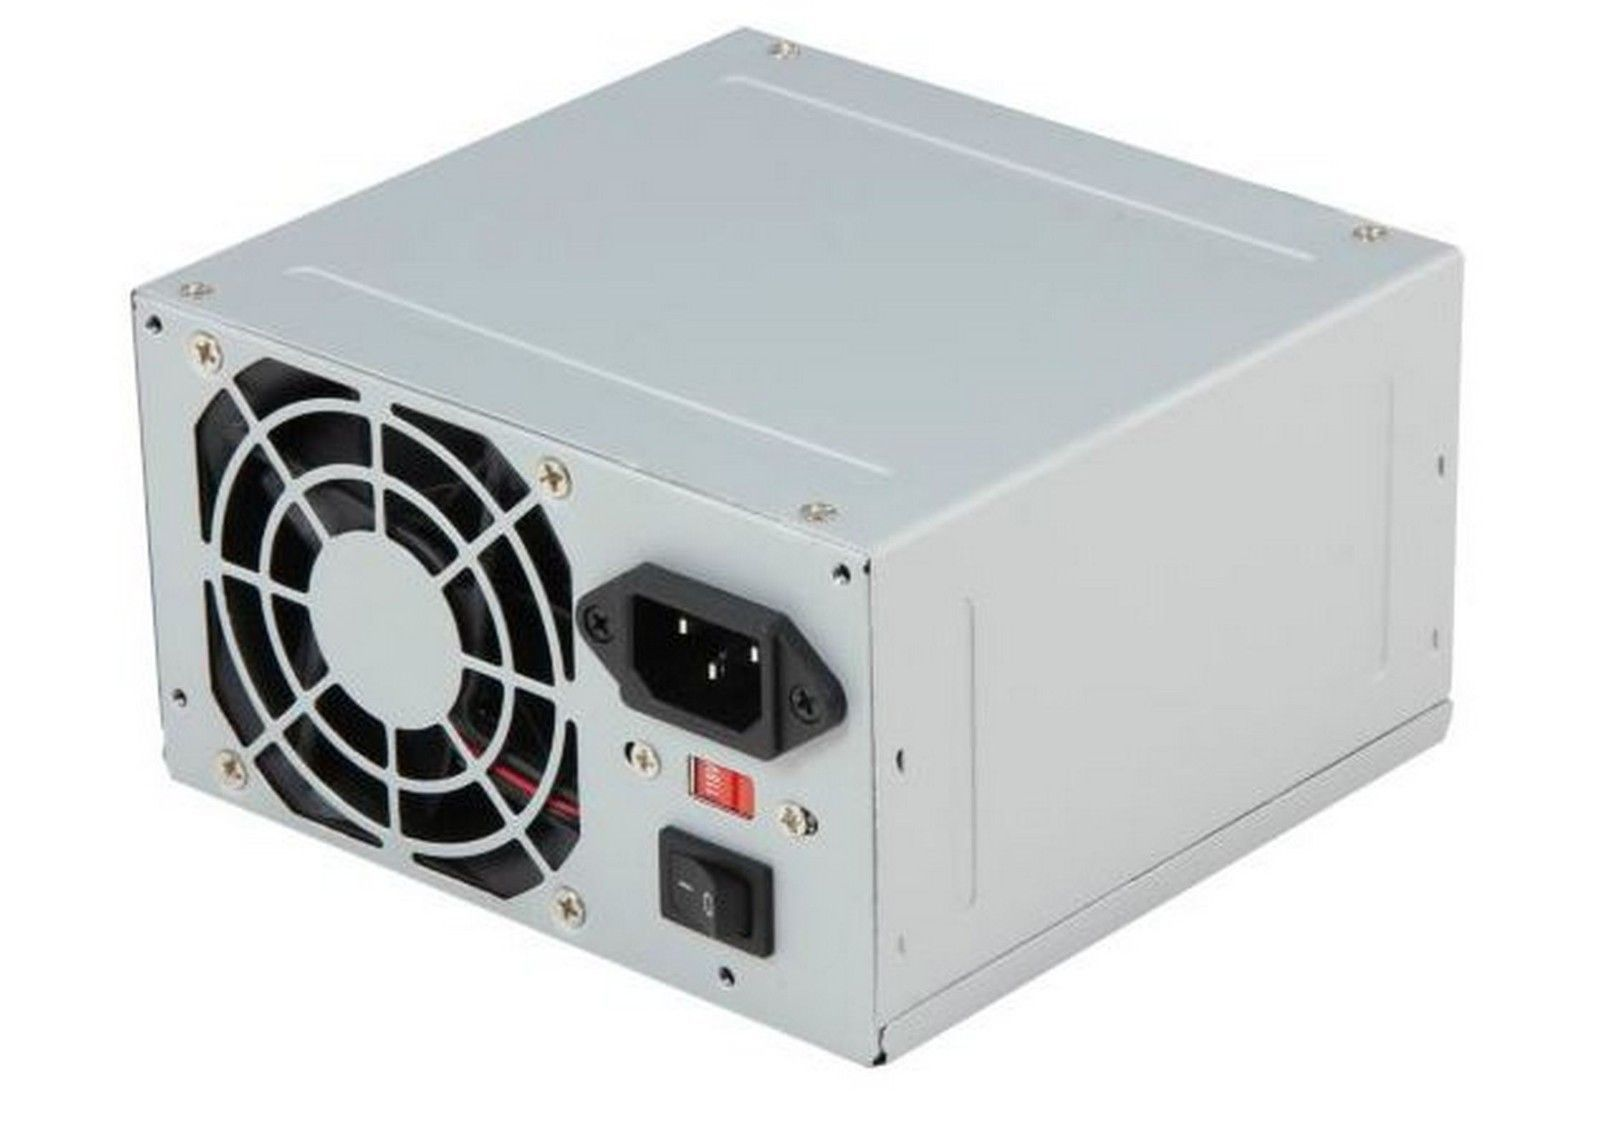 New PC Power Supply Upgrade for HP Pavilion  a622n Desktop Computer